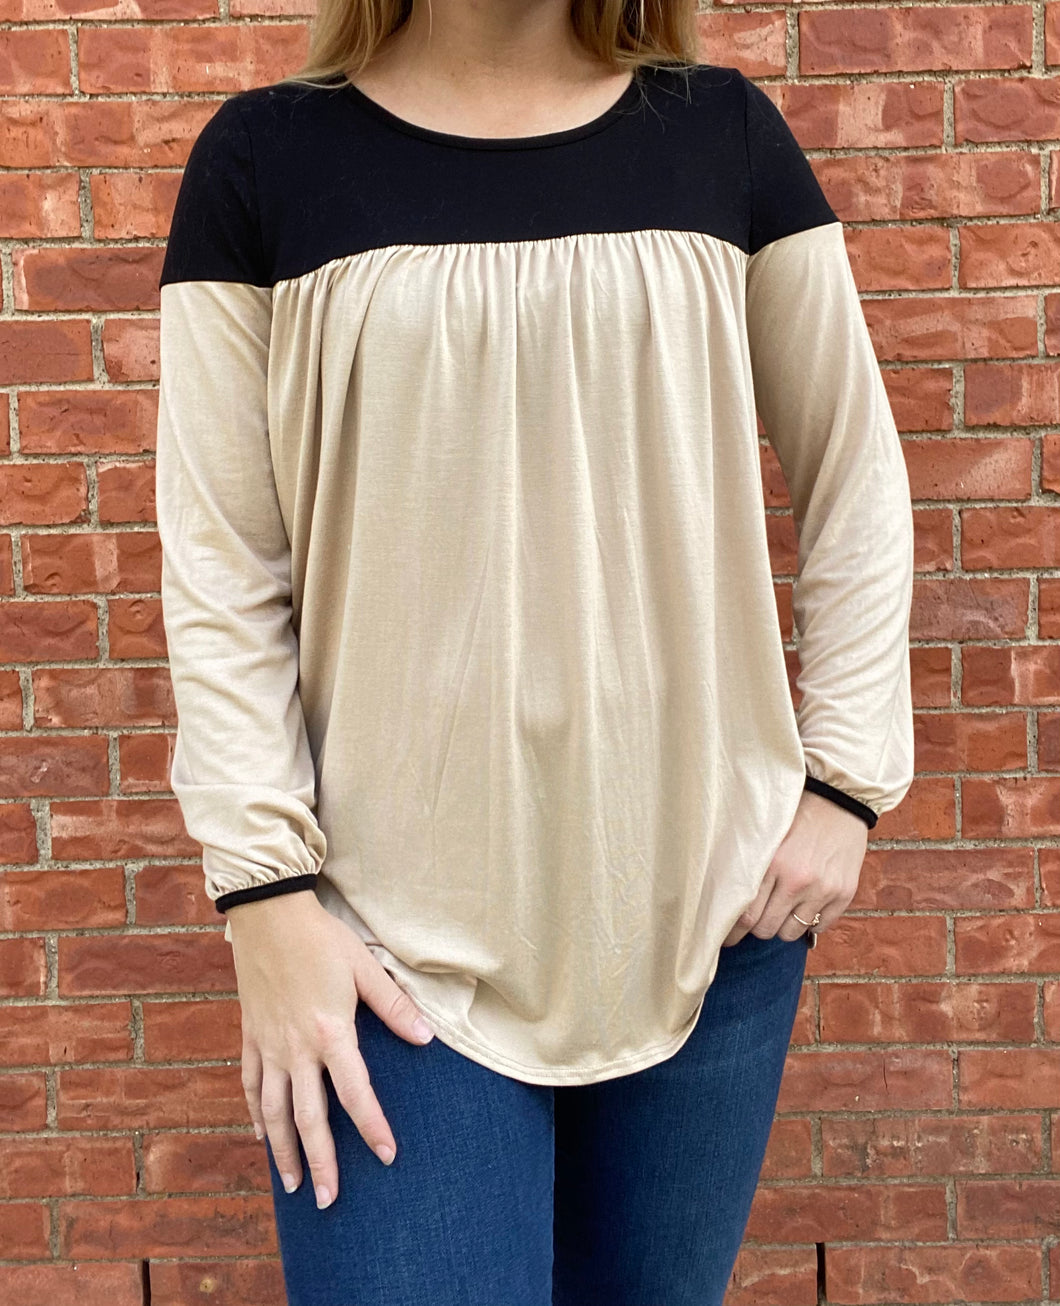 Black and Tan blouse